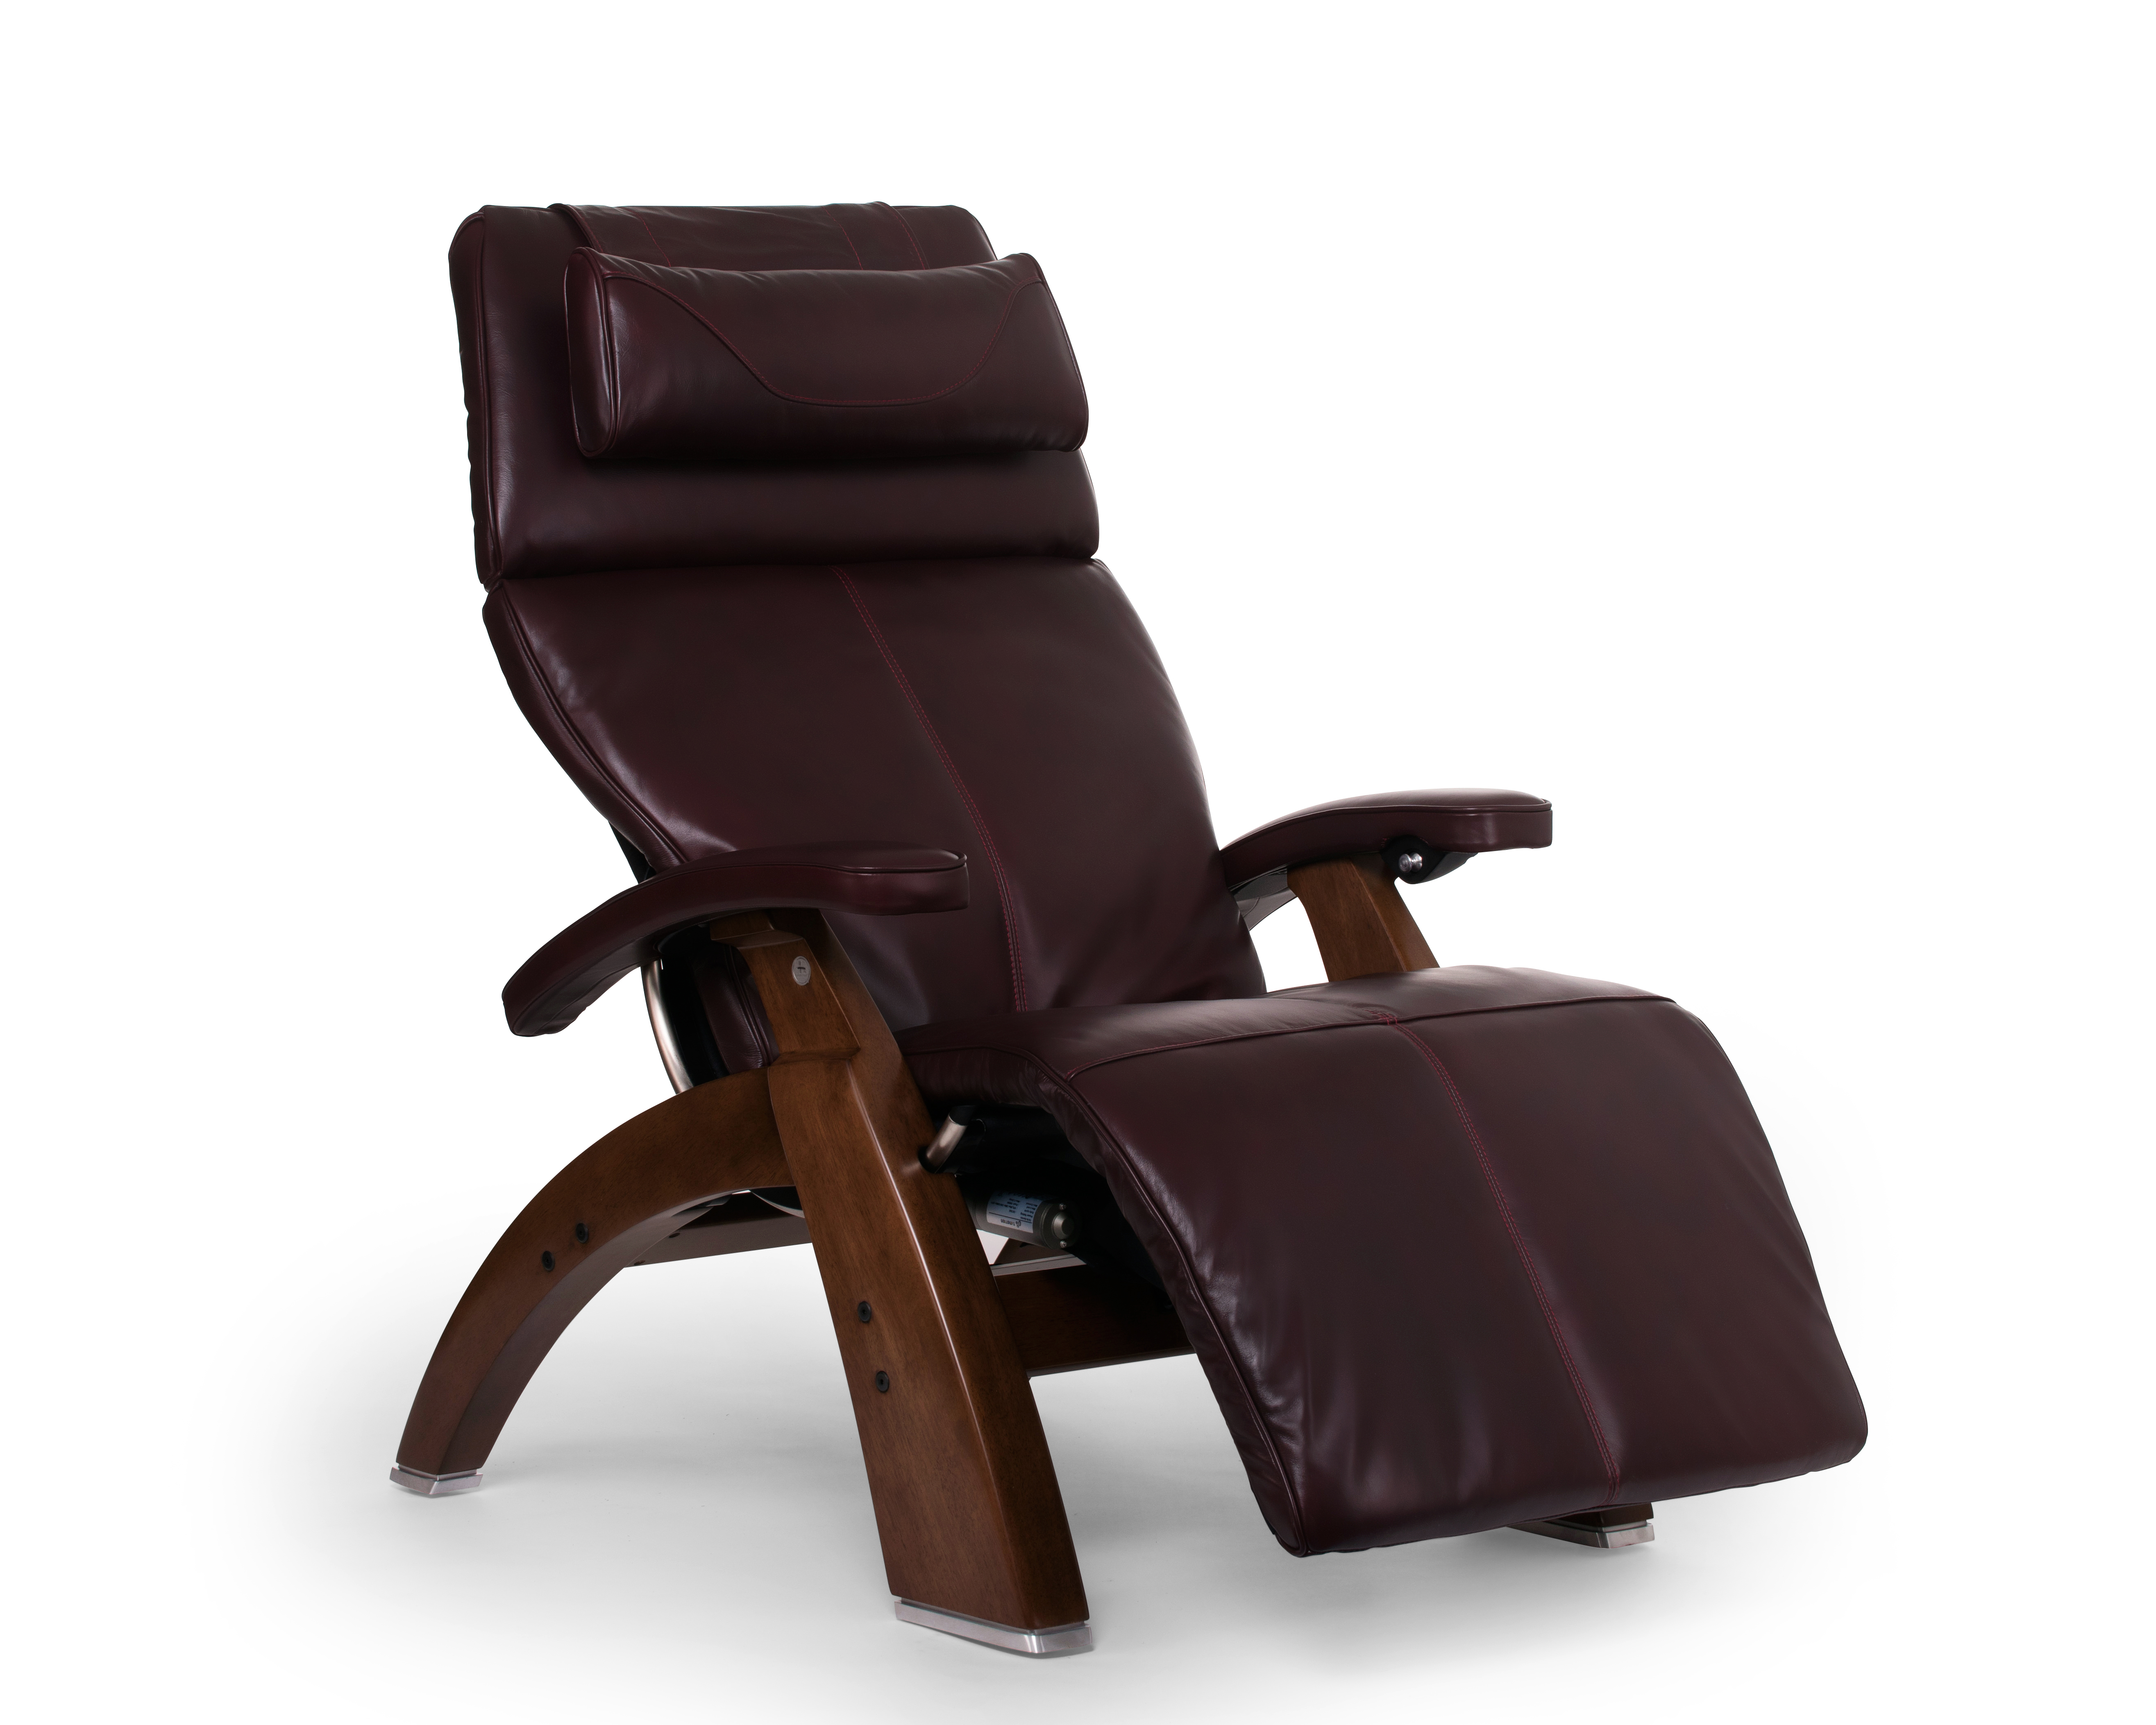 The Perfect Chair Burgundy Premium Leather Walnut Wood Base Series 2 Classic